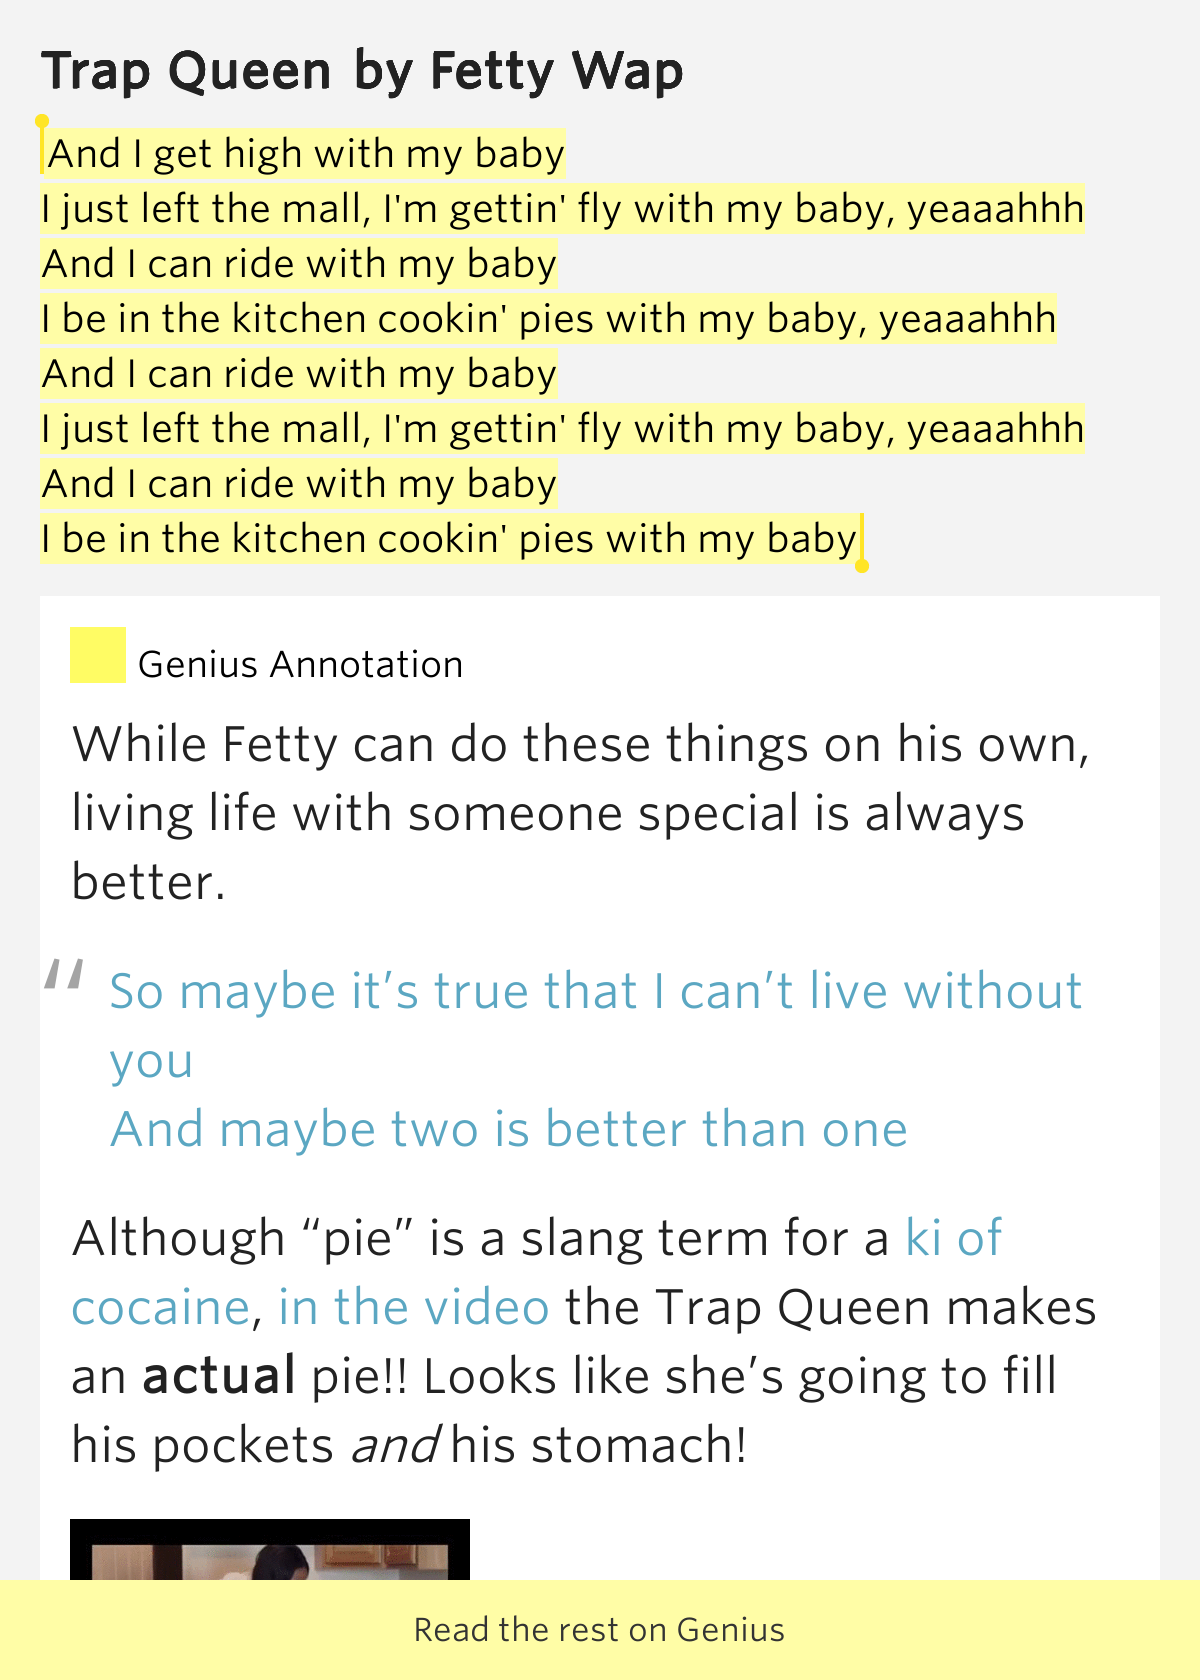 Trap queen lyrics meaning